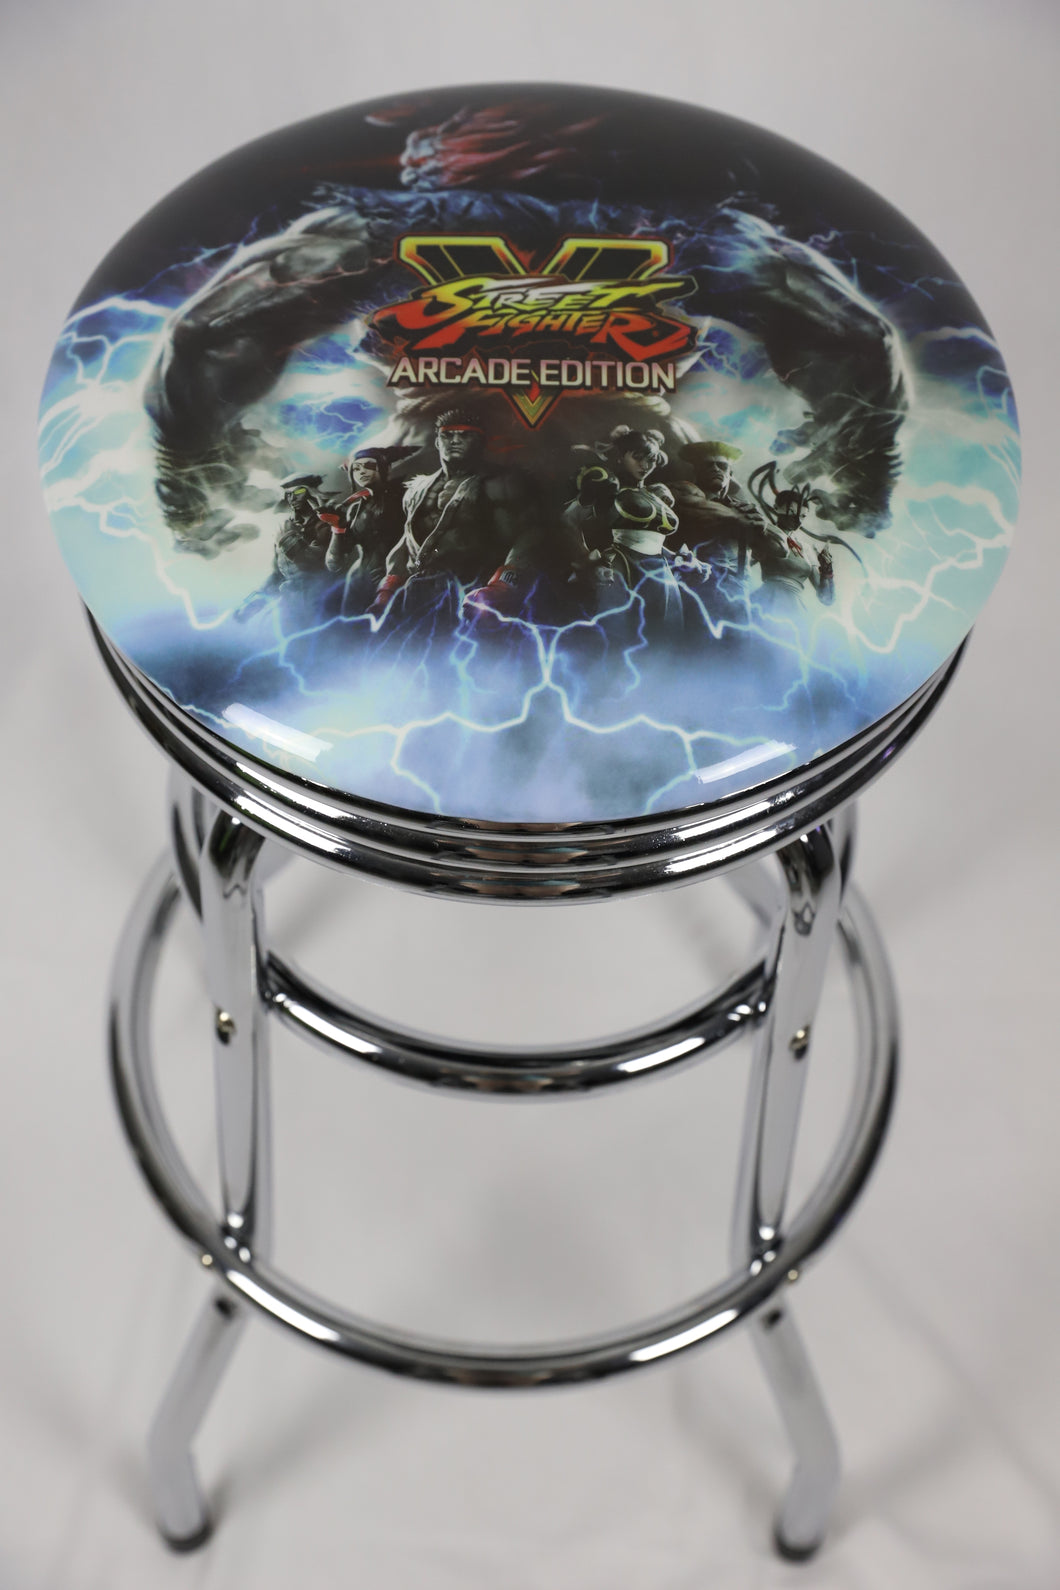 Street Fighter Arcade Bar Stool 78cm with Swivel - Games Arcadia